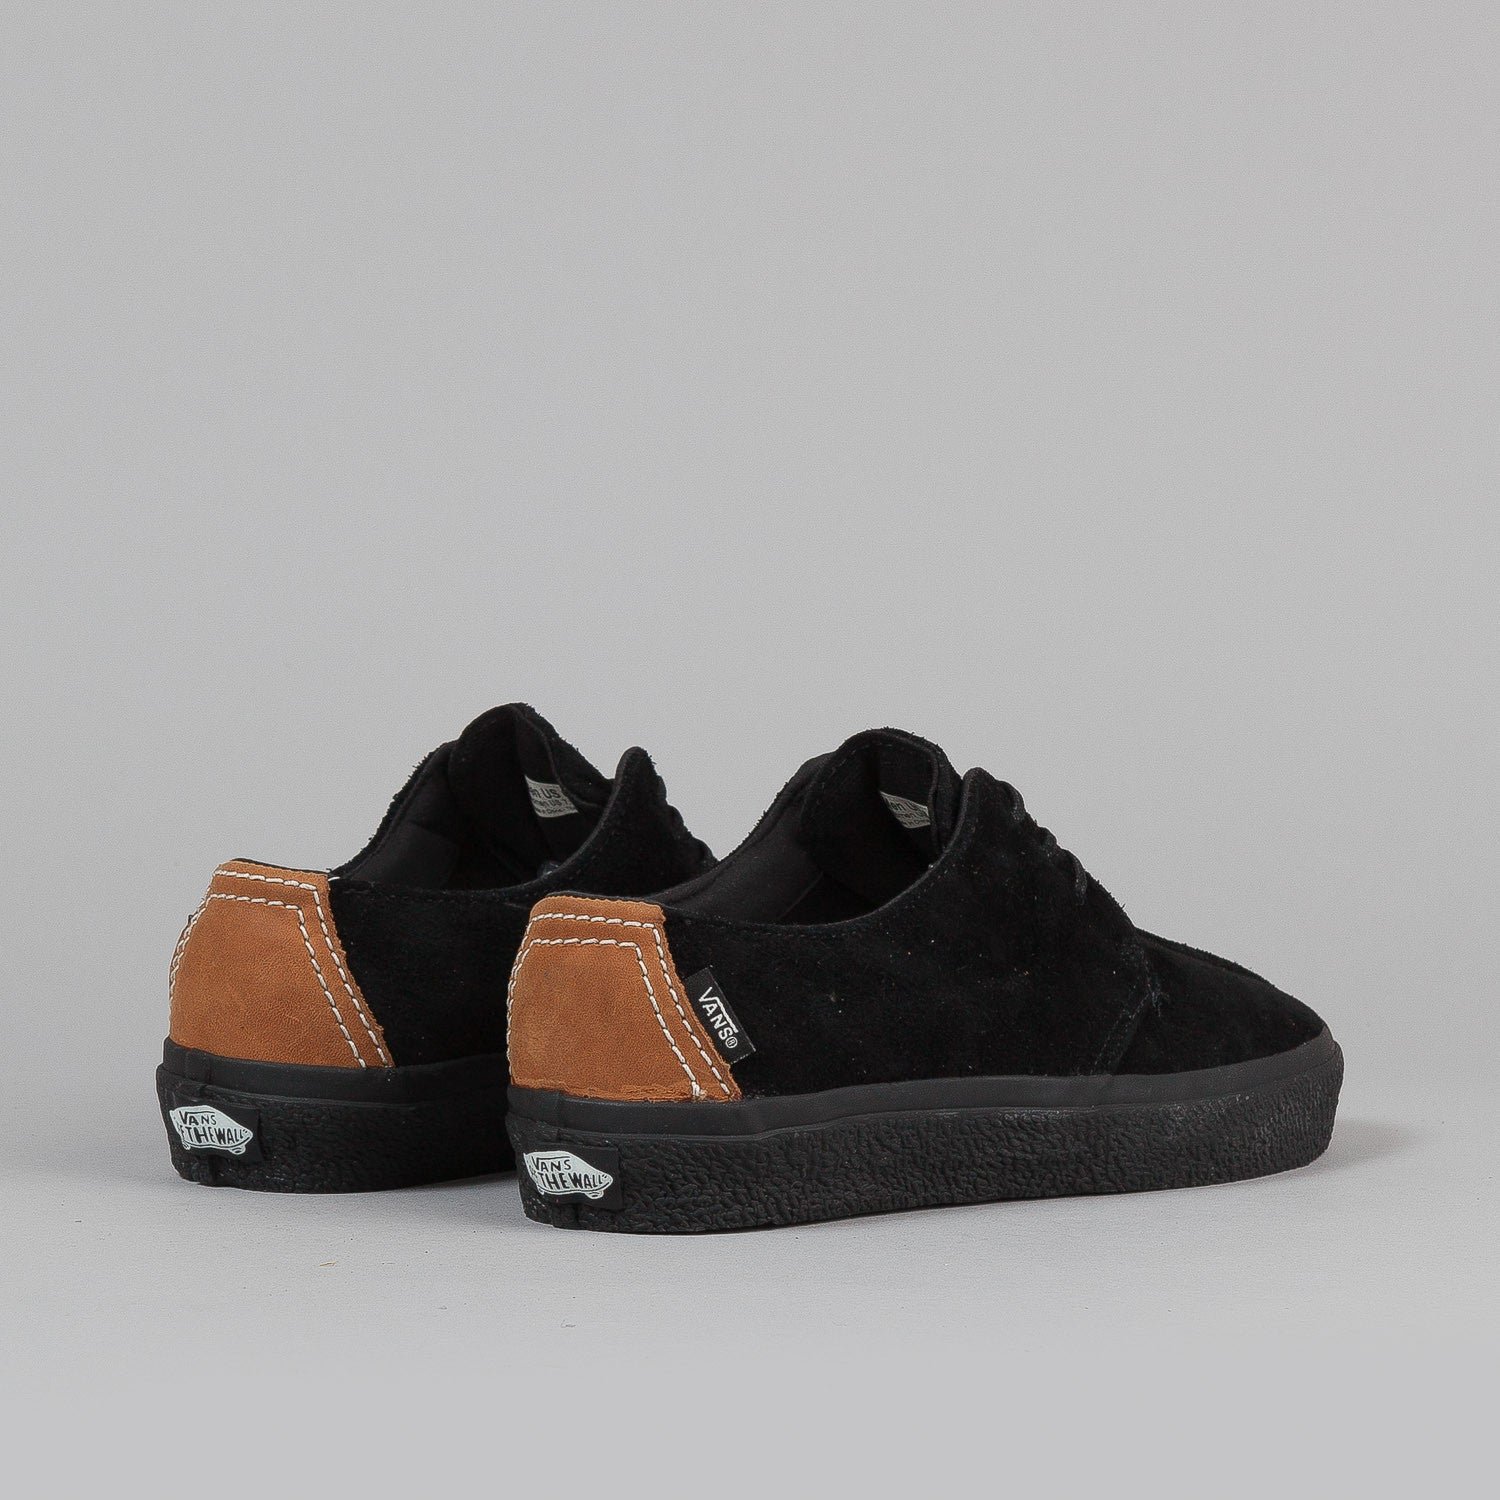 Vans Carrilo CA Shoes - Black